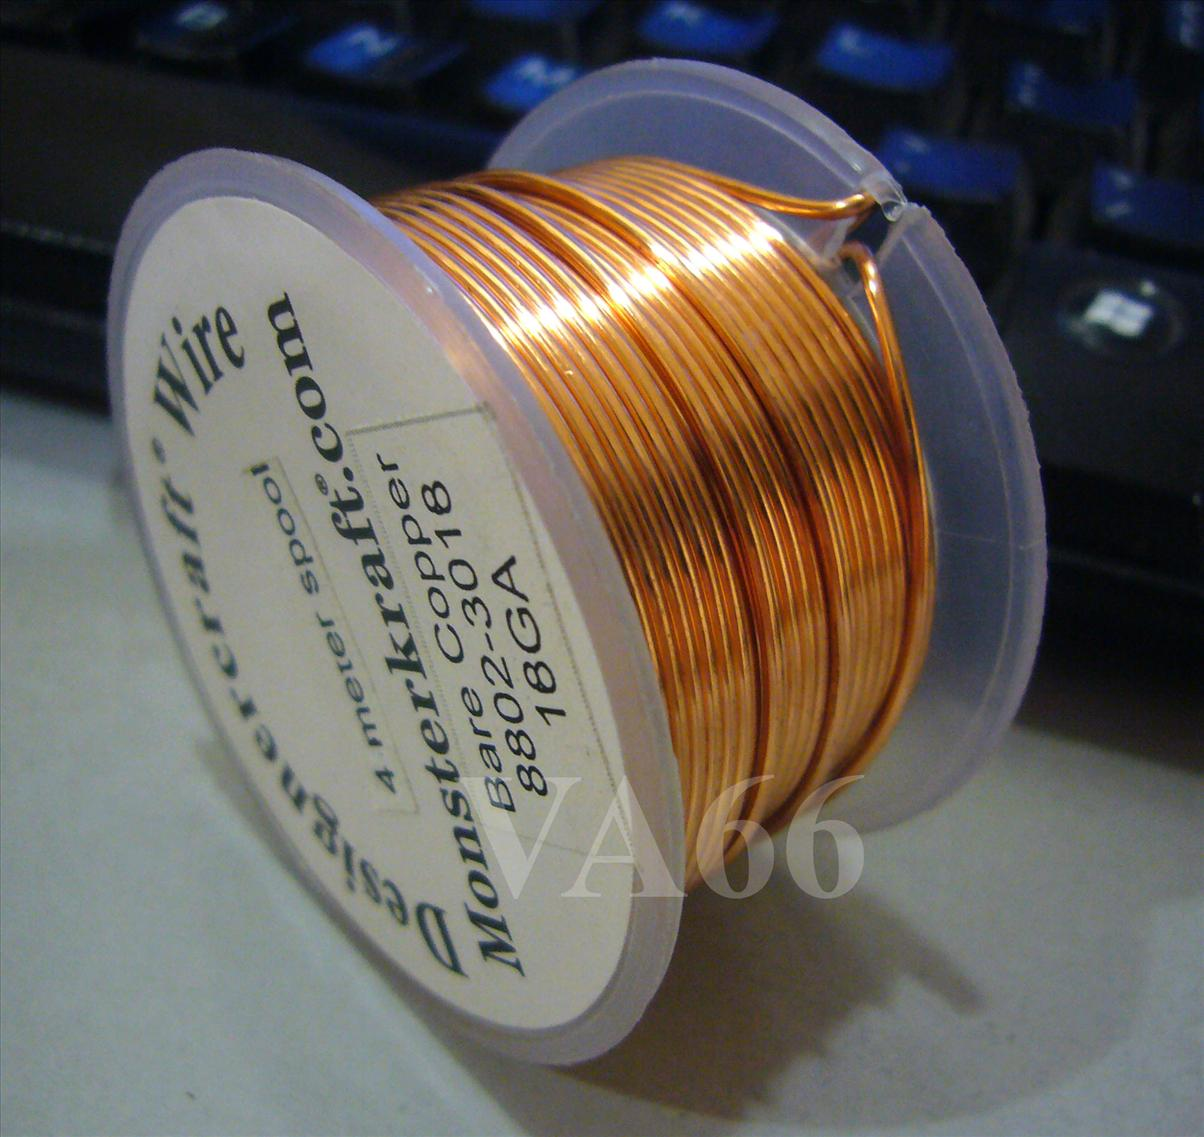 Mm 18 gauge wire wire center diy 4 meters copper designer bare co end 8 9 2018 10 59 pm rh lelong com my convert 18 gauge wire to mm convert 18 gauge wire to mm keyboard keysfo Image collections